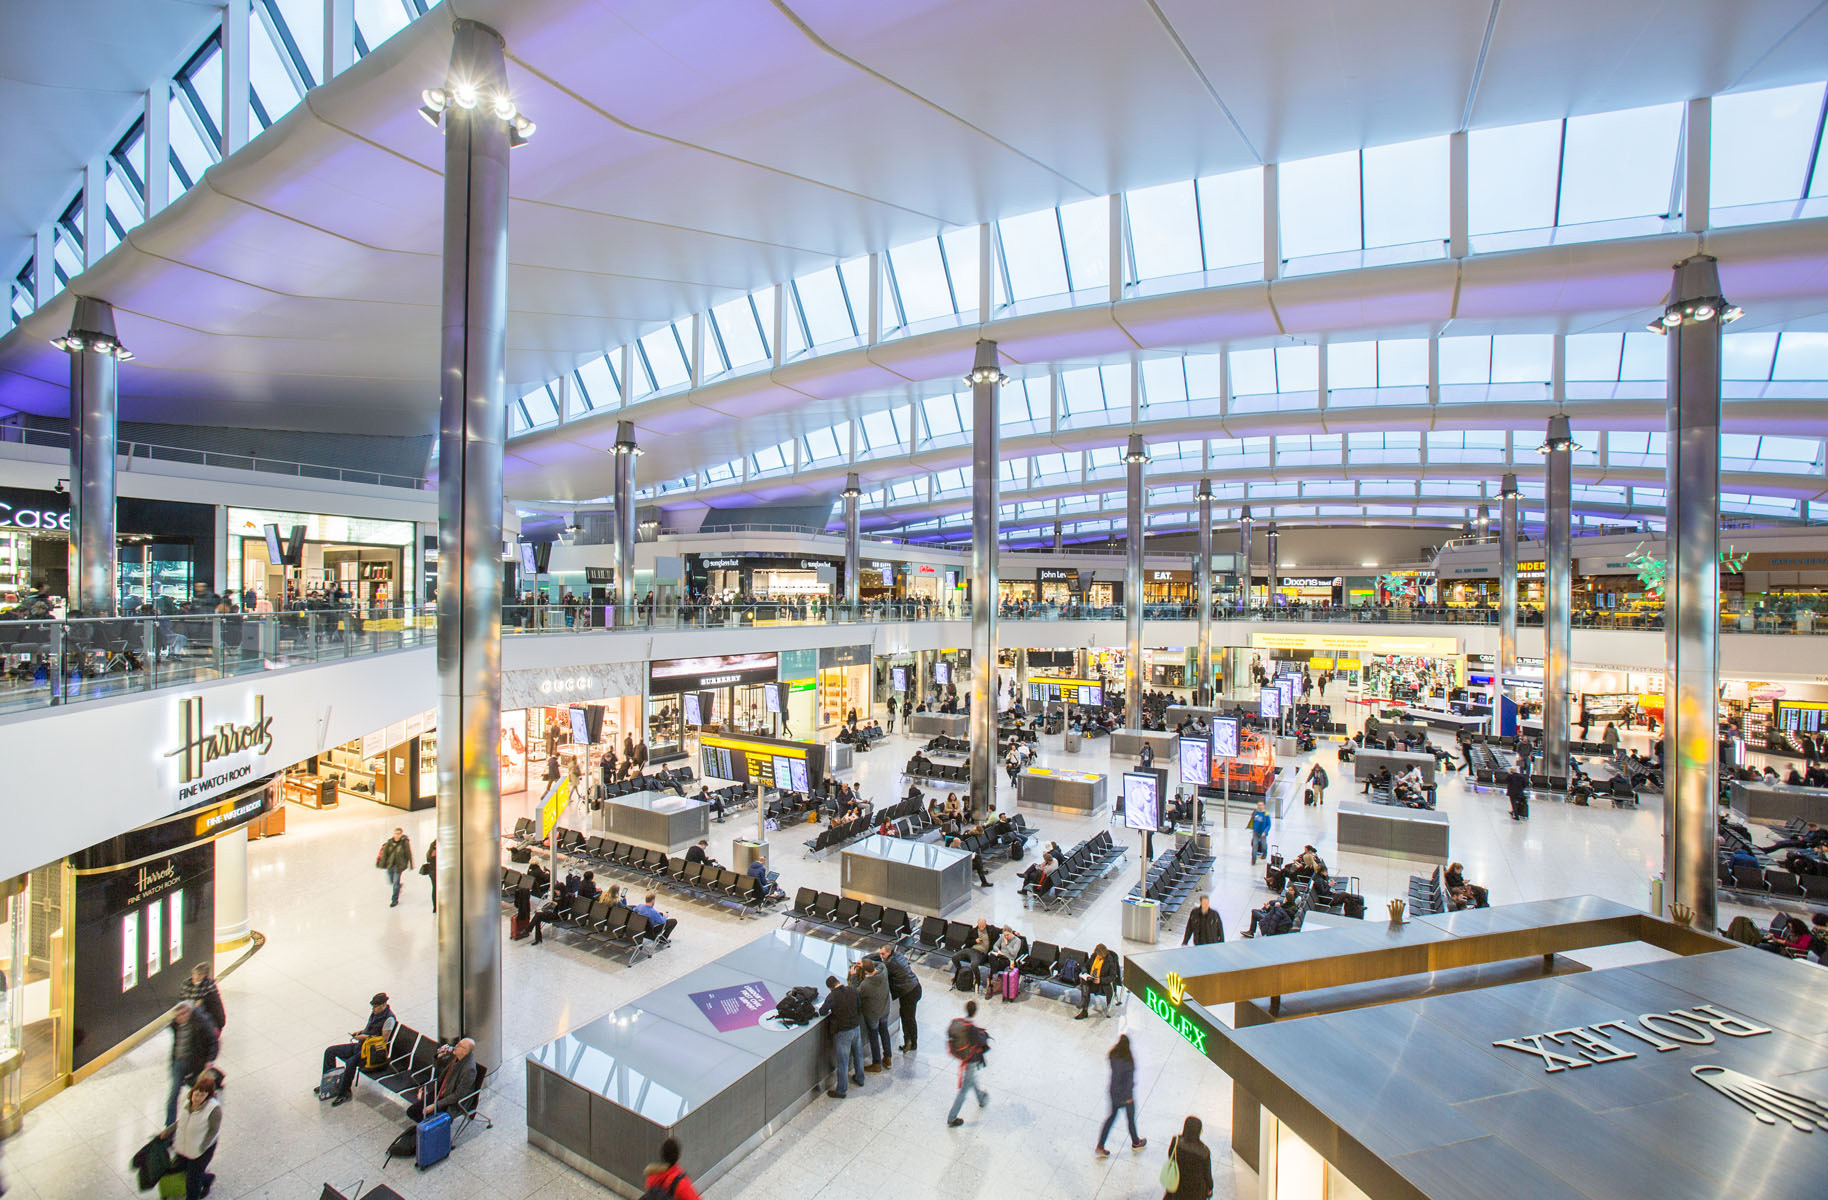 Heathrow Airport Shops